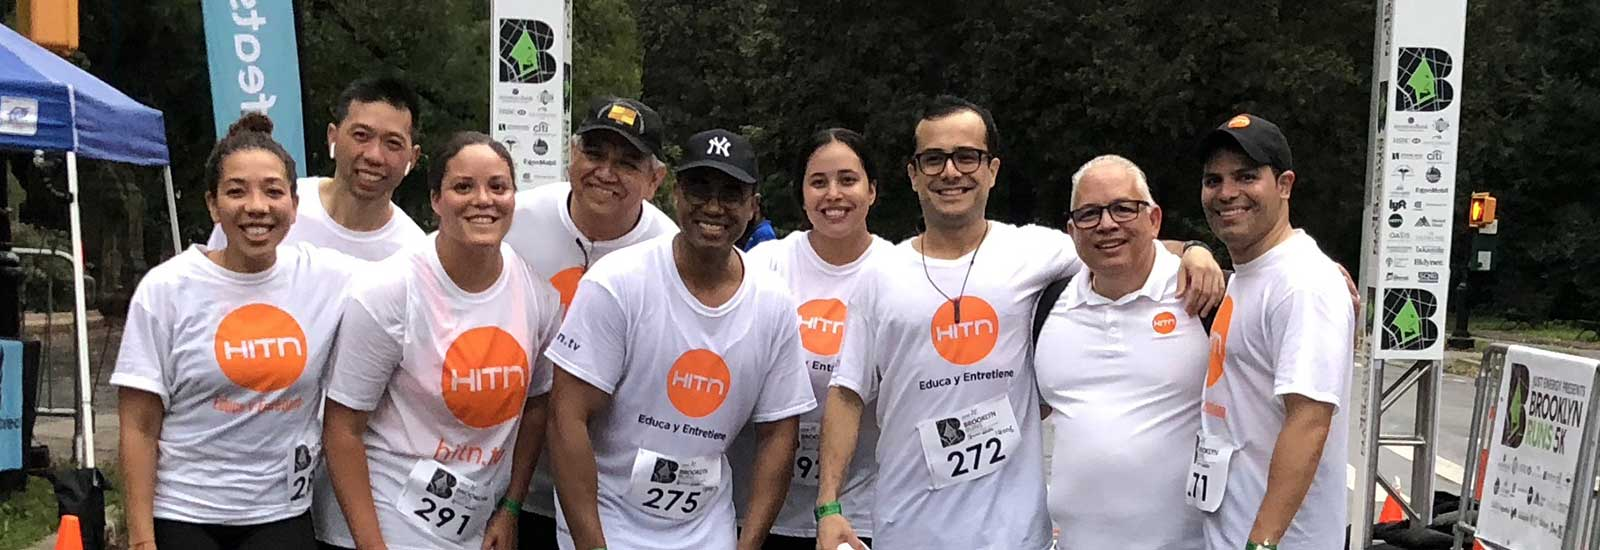 5K Brooklyn Runs Corporate Challenge